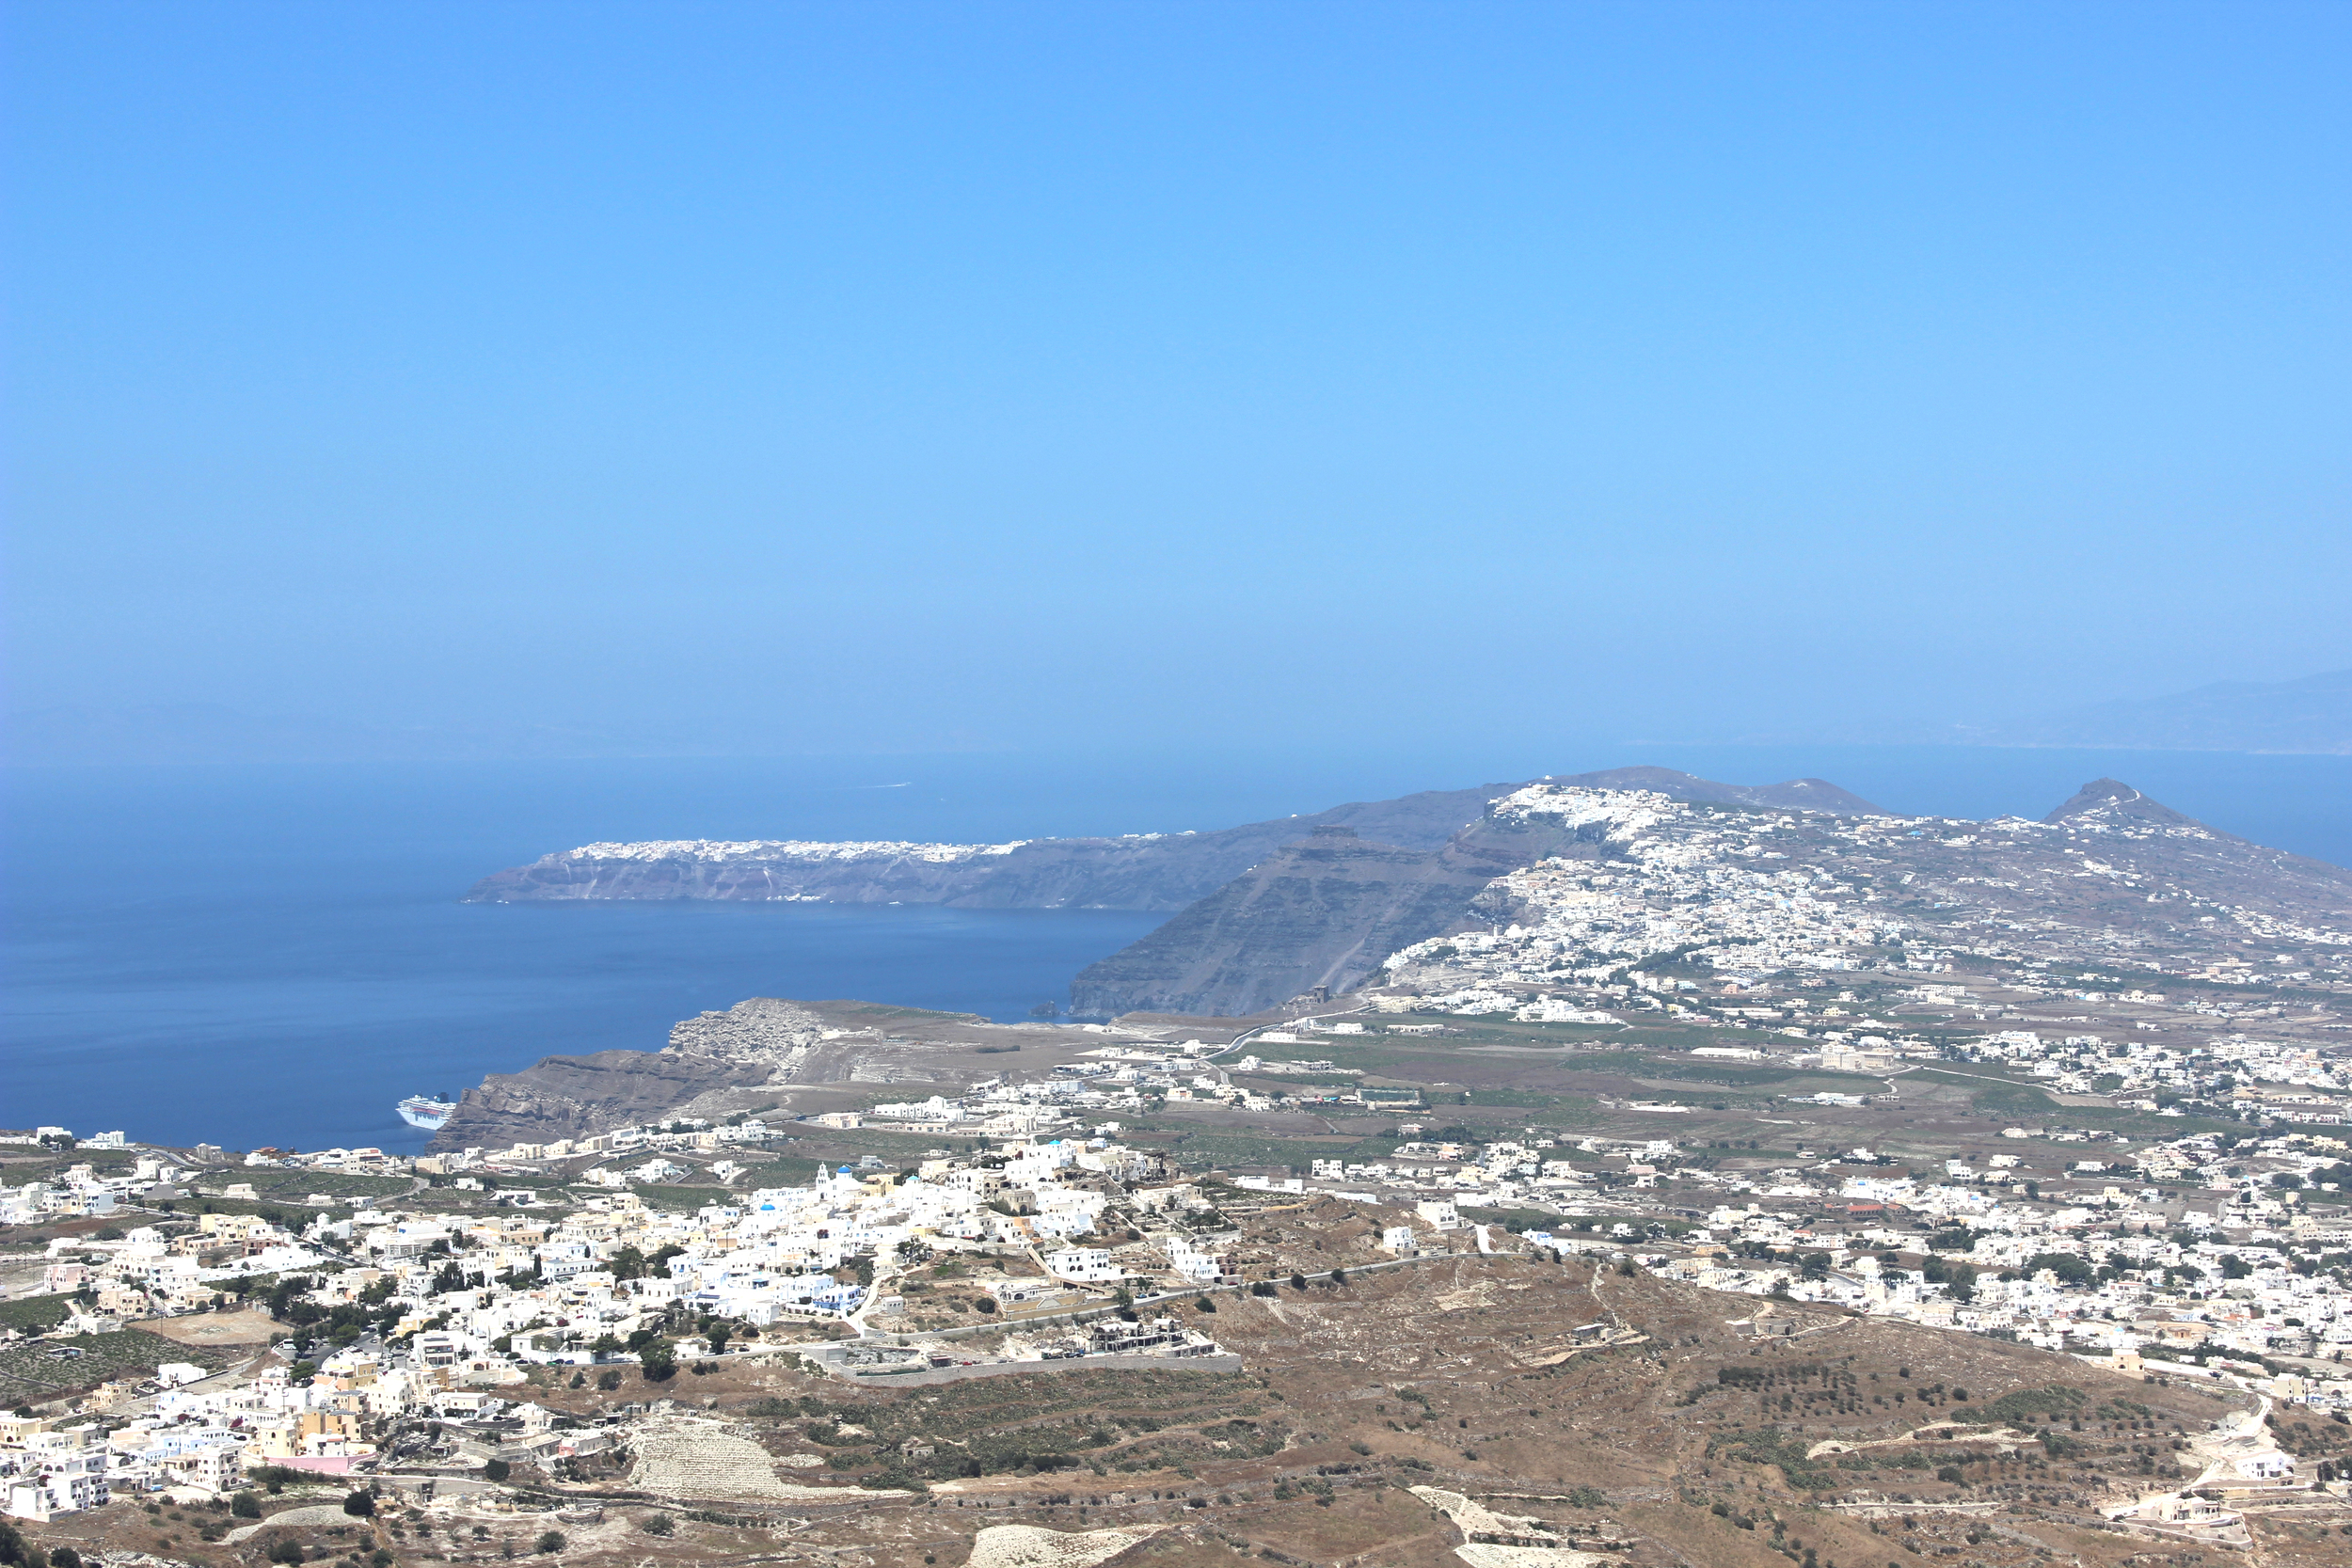 greece_windymountaintop_02.jpg